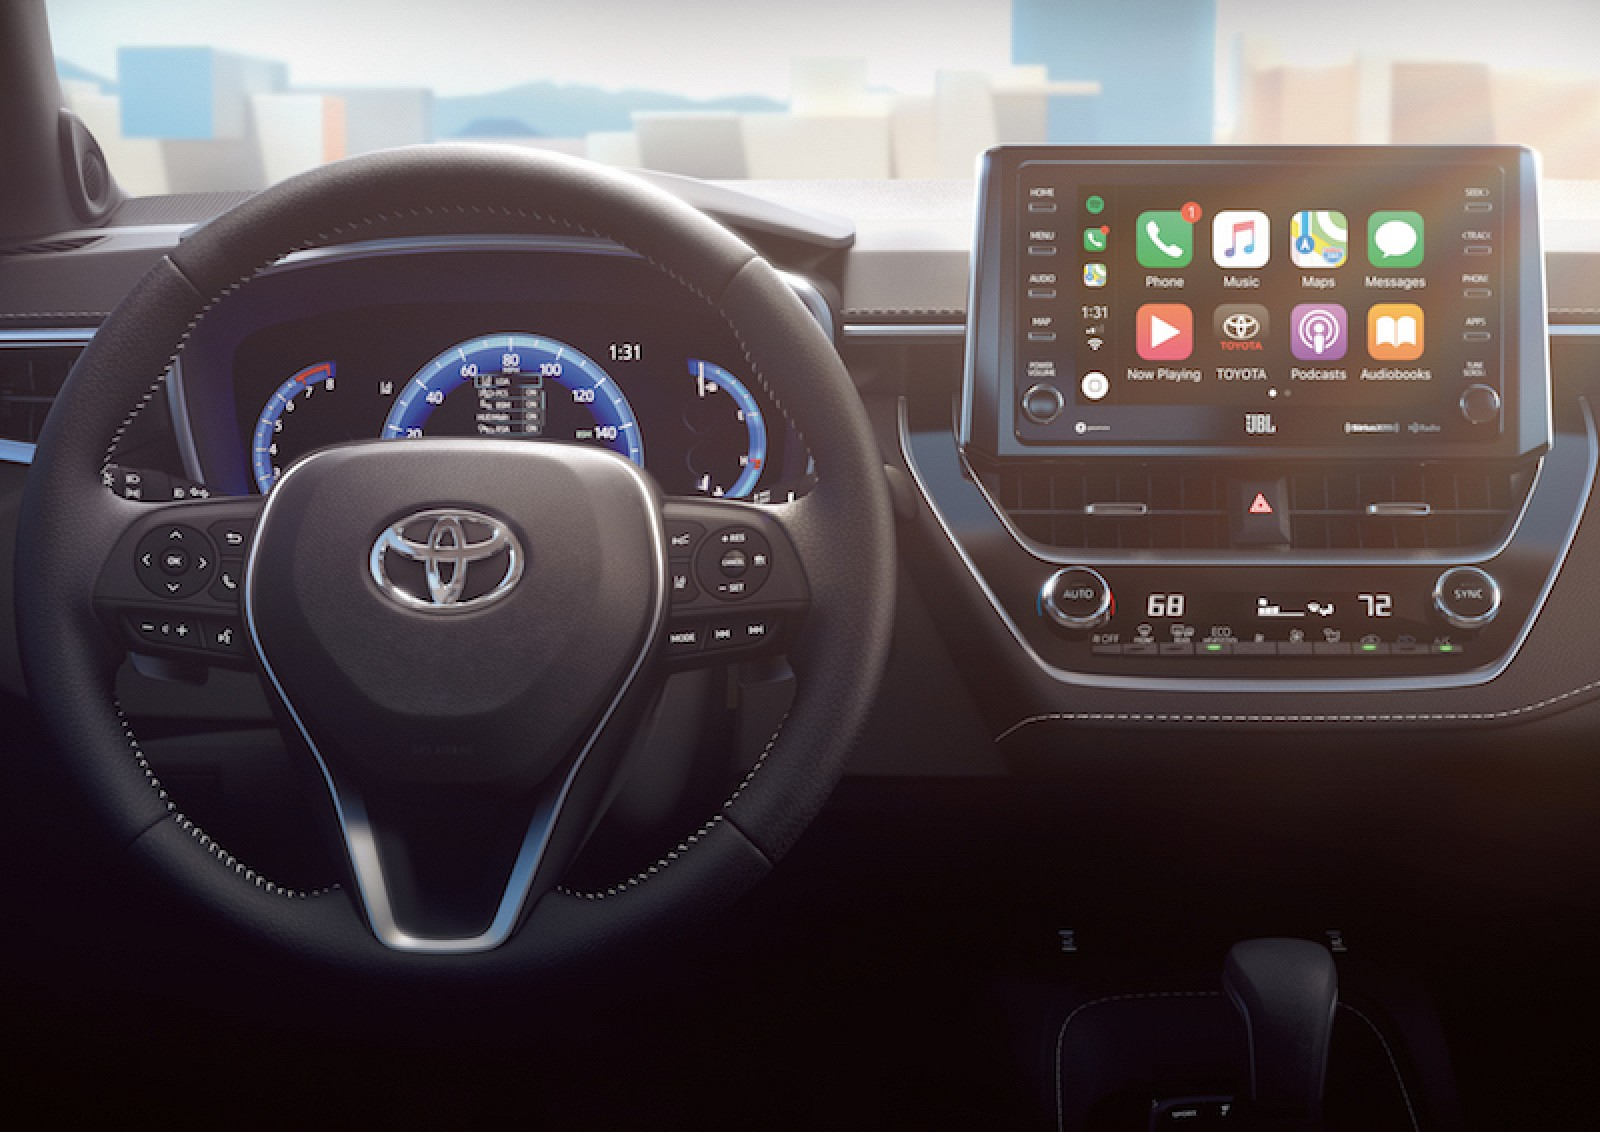 Toyota Continues CarPlay Rollout With 2019 Corolla Hatchback - MacRumors